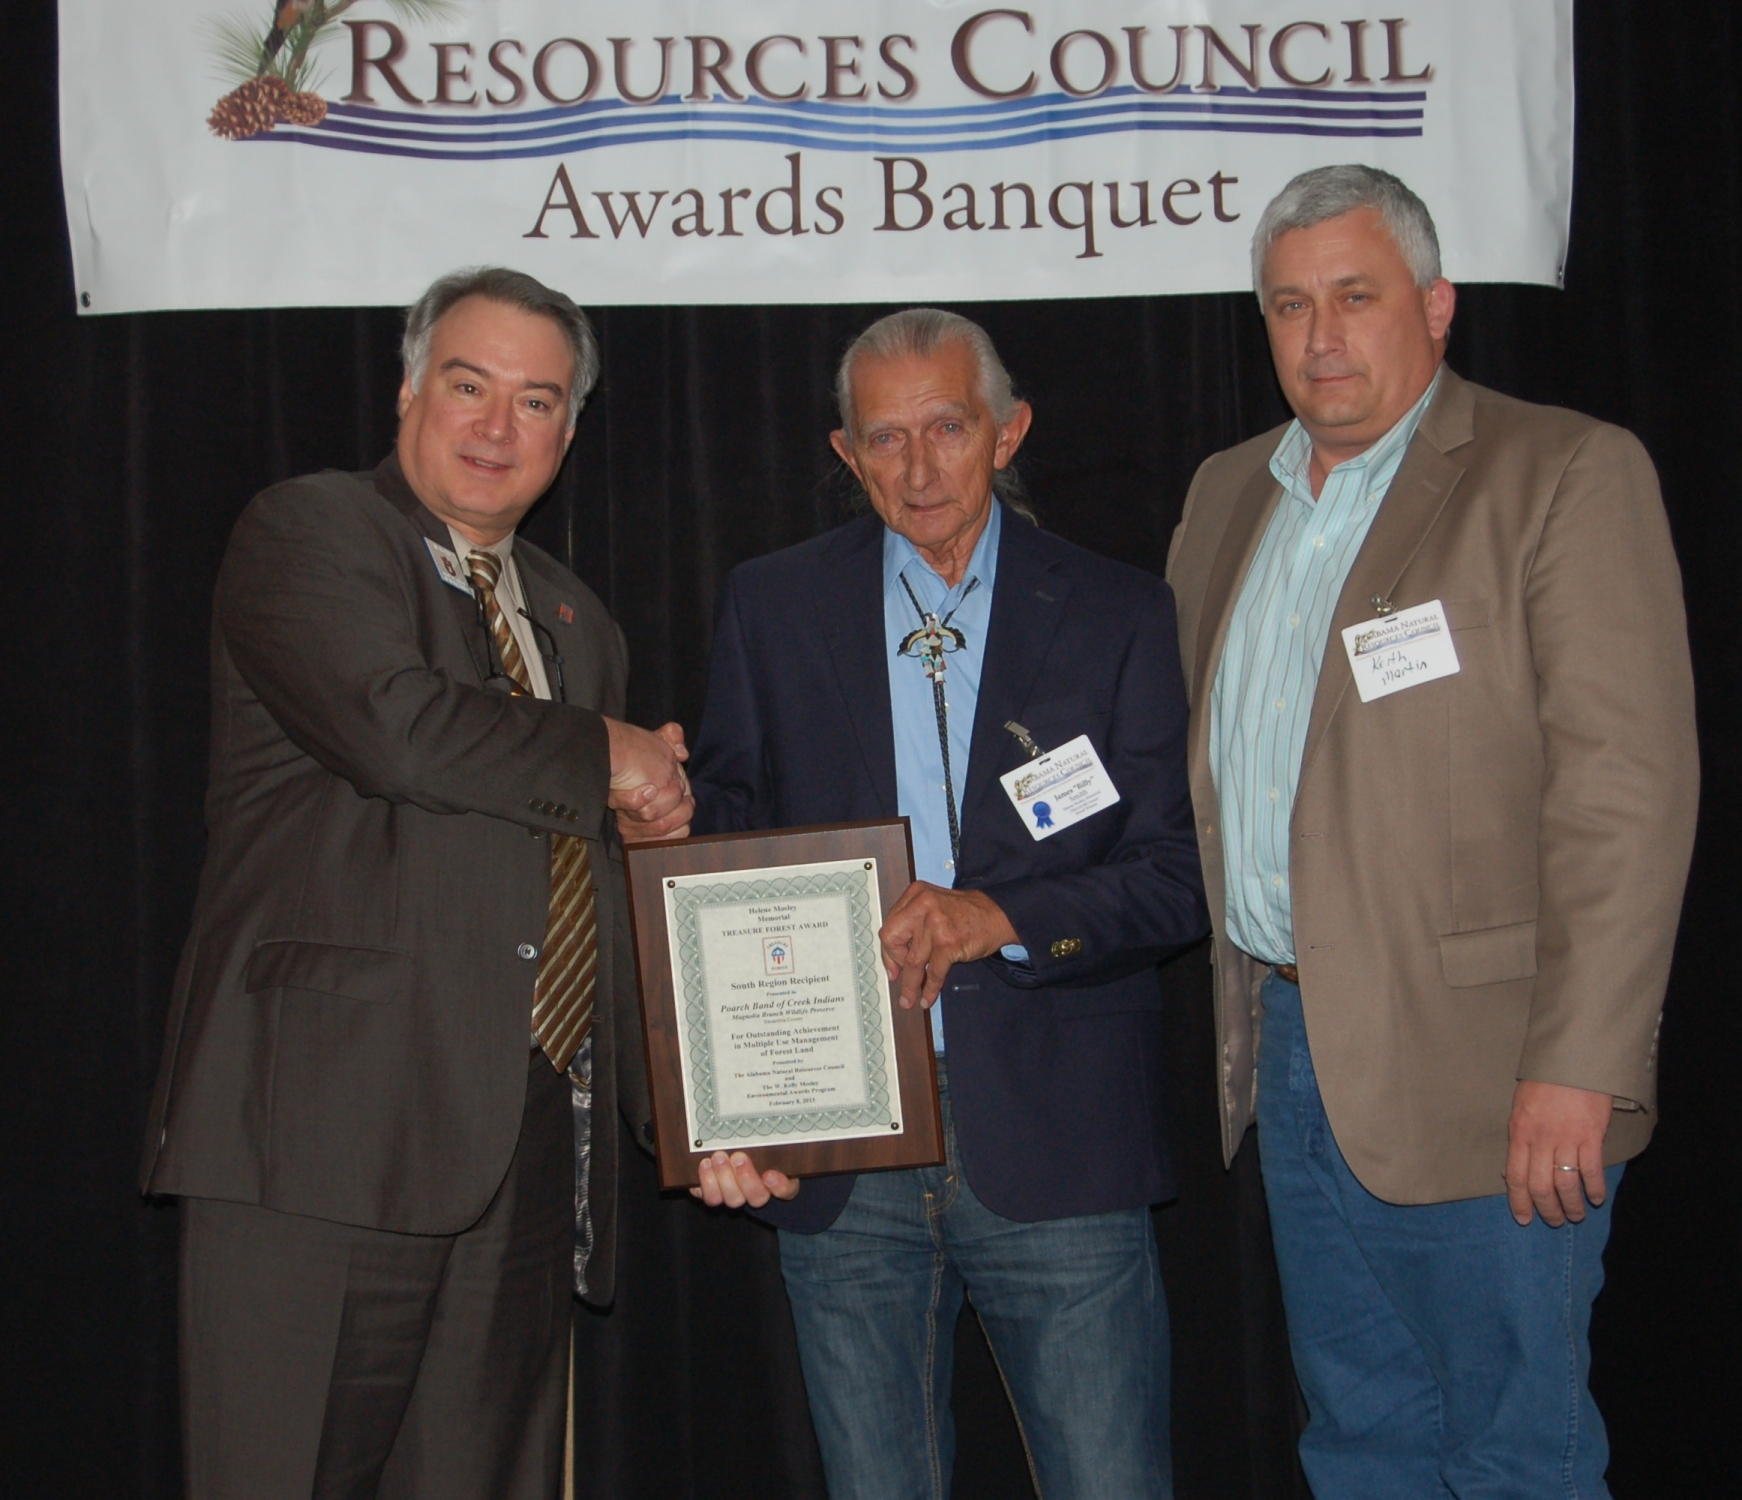 (l-r) Dr. James Shepard presents Helene Mosley TREASURE Forest Award for the South Region to Billy Smith and Keith Martin of the Poarch Band of Creek Indians.